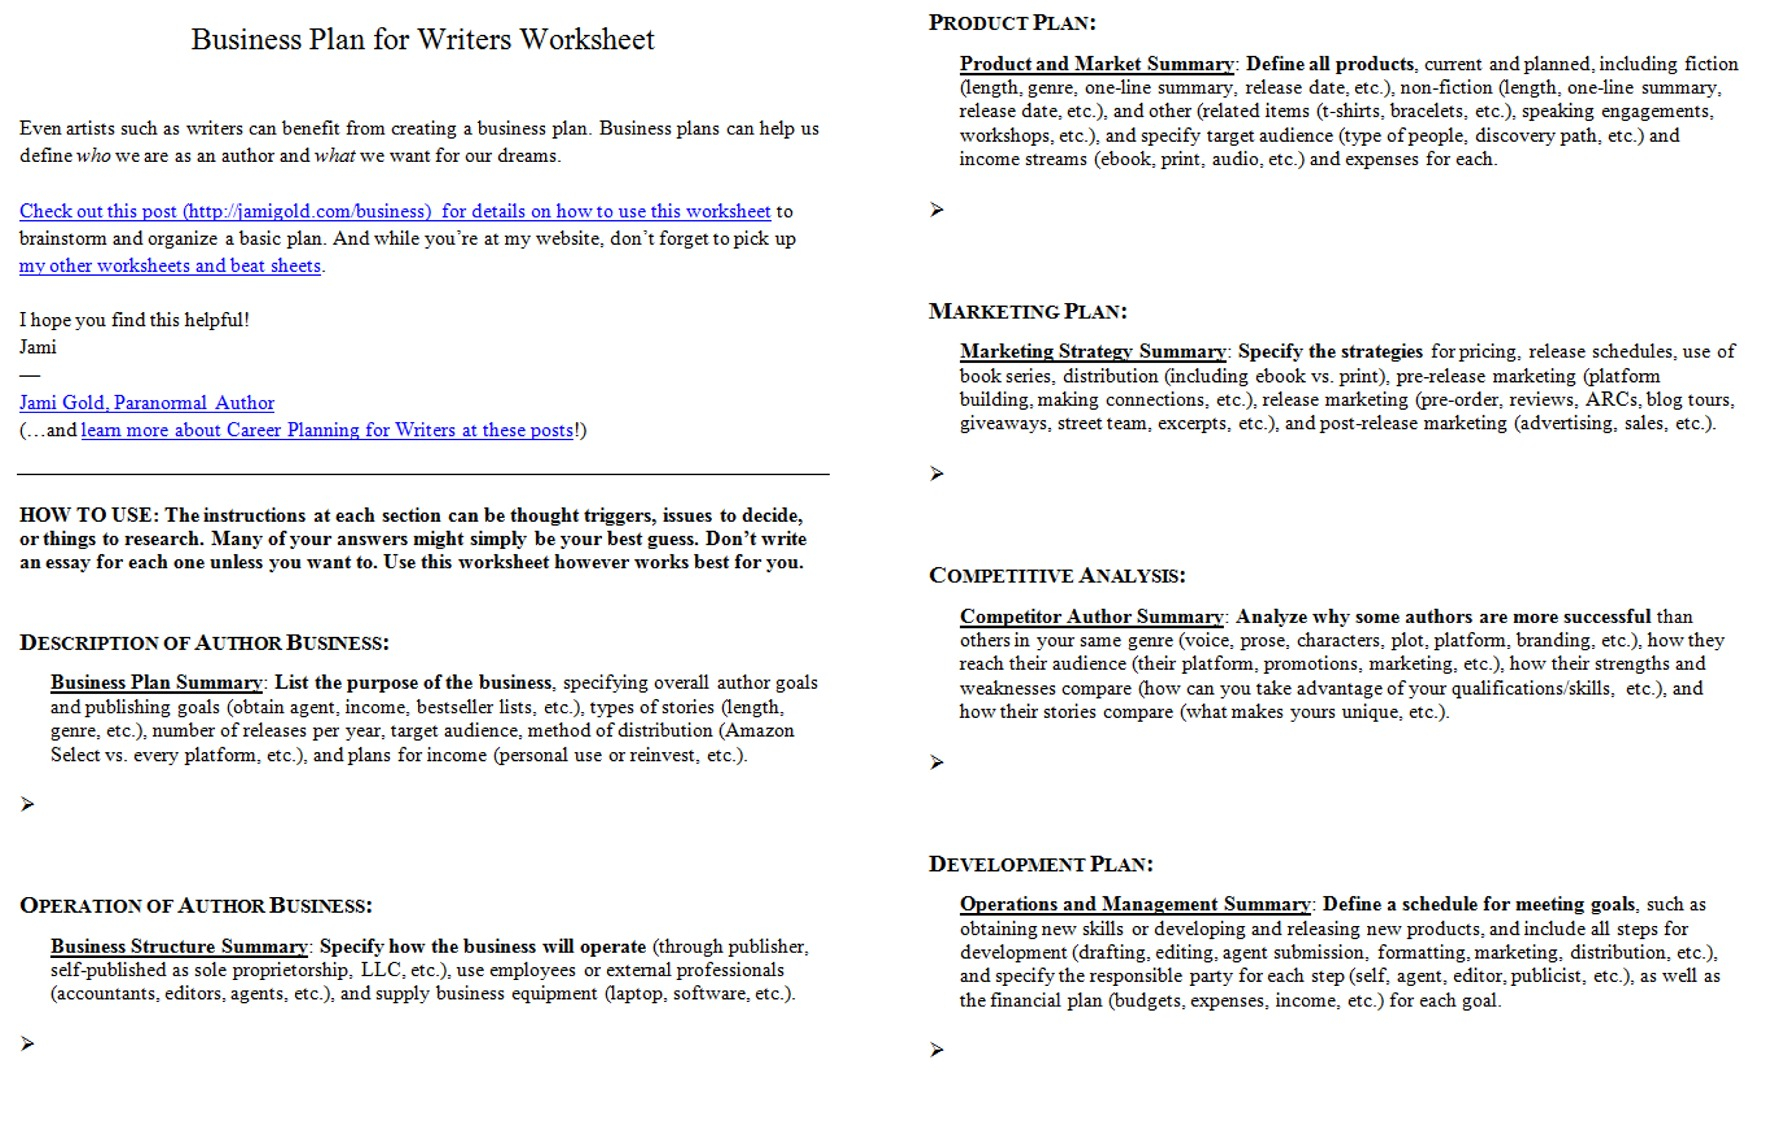 Aldiablosus  Pleasant Worksheets For Writers  Jami Gold Paranormal Author With Marvelous Screen Shot Of Both Pages Of The Business Plan For Writers Worksheet With Cool Base Word Worksheets Also Ratio Proportion Worksheet In Addition Analyzing Text Worksheets And Specific Heat Worksheet With Answers As Well As Make Your Own Multiplication Worksheet Additionally Army Body Fat Content Worksheet From Jamigoldcom With Aldiablosus  Marvelous Worksheets For Writers  Jami Gold Paranormal Author With Cool Screen Shot Of Both Pages Of The Business Plan For Writers Worksheet And Pleasant Base Word Worksheets Also Ratio Proportion Worksheet In Addition Analyzing Text Worksheets From Jamigoldcom